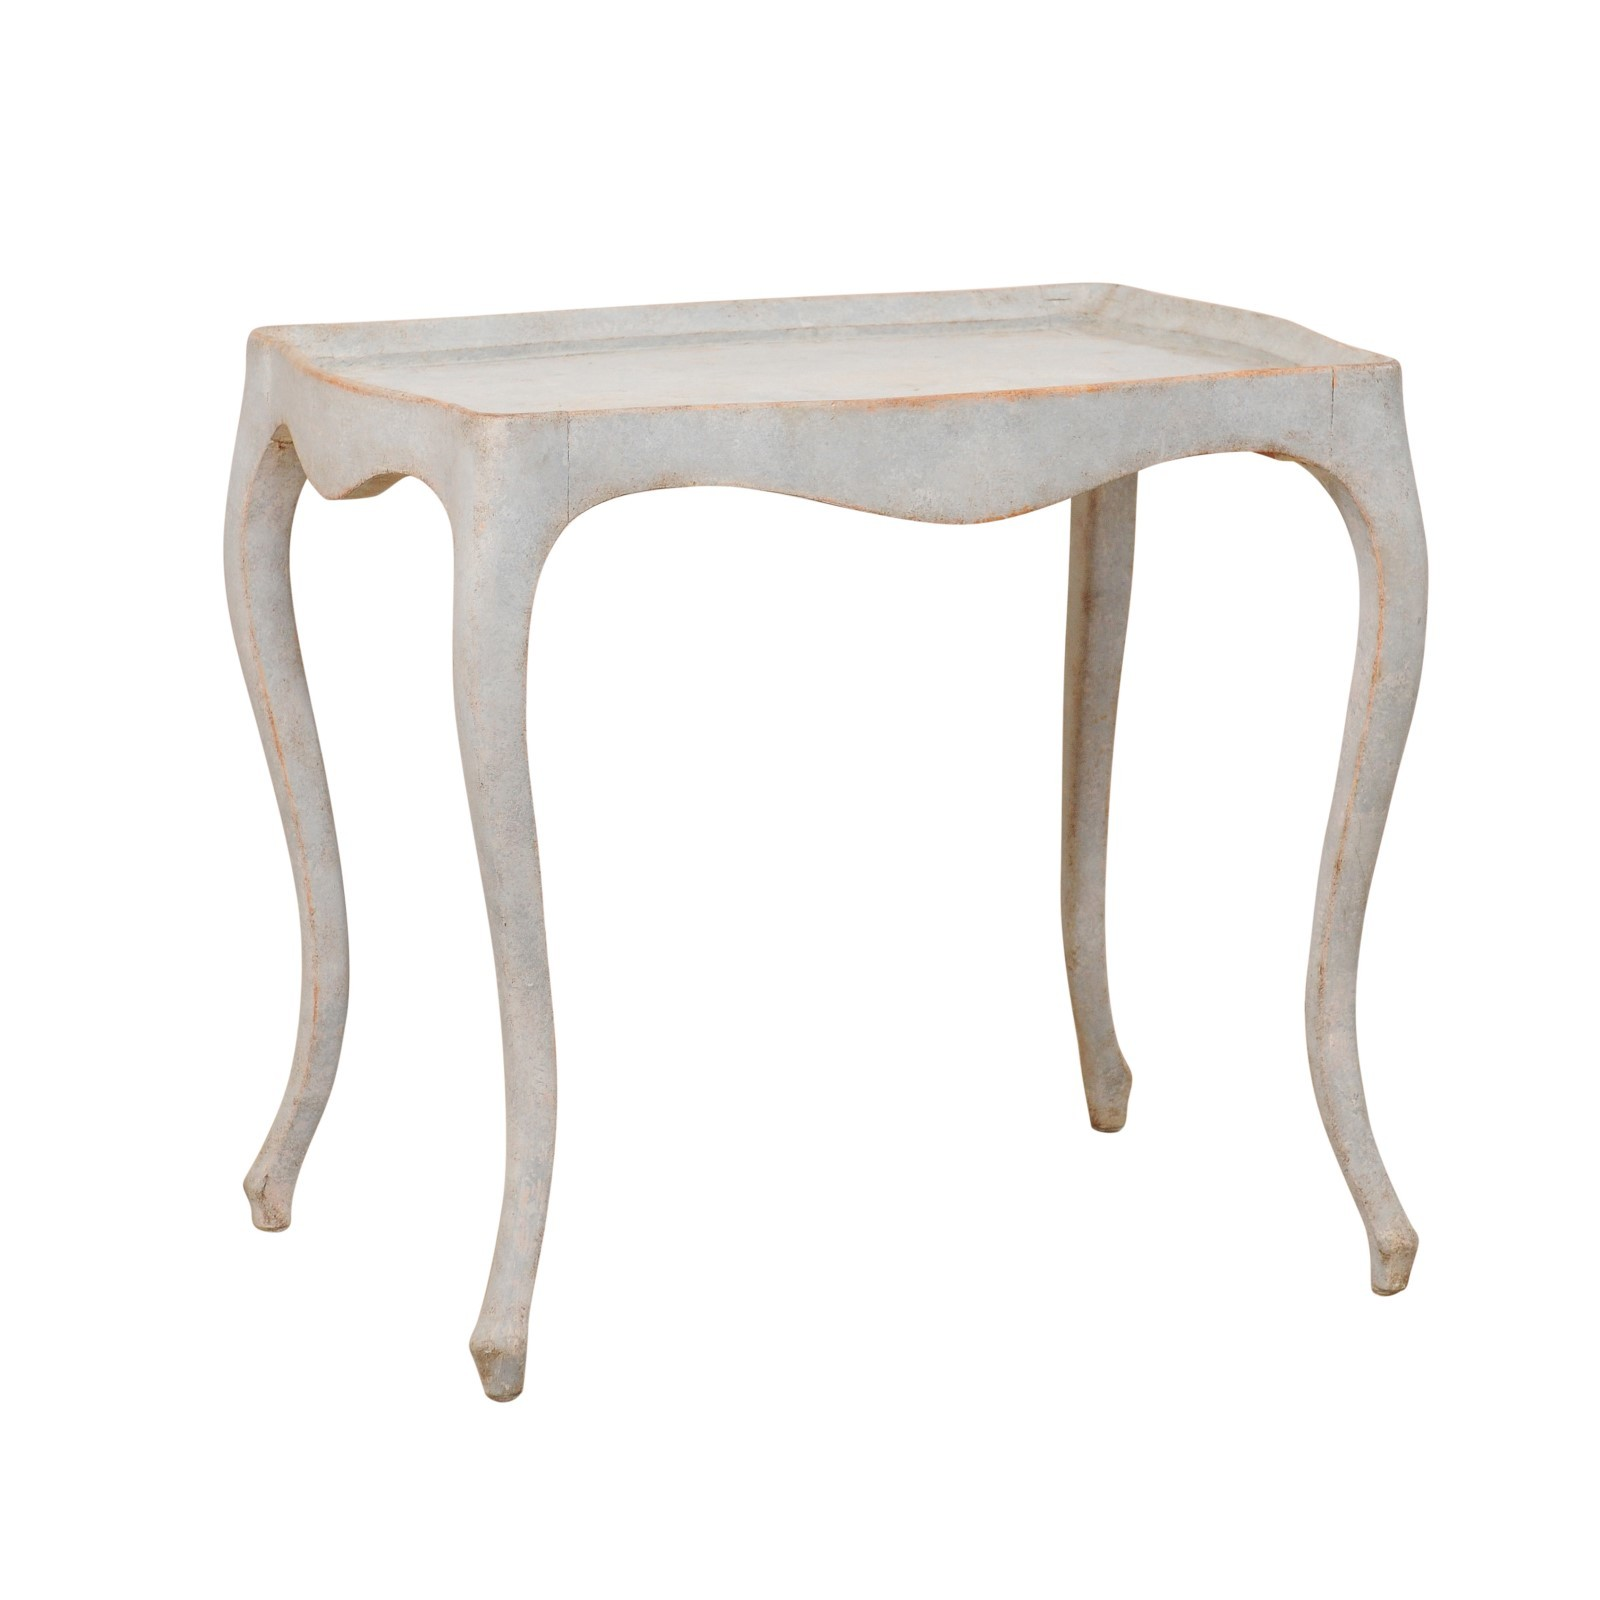 Period Gustavian Painted Wood Table, Sweden